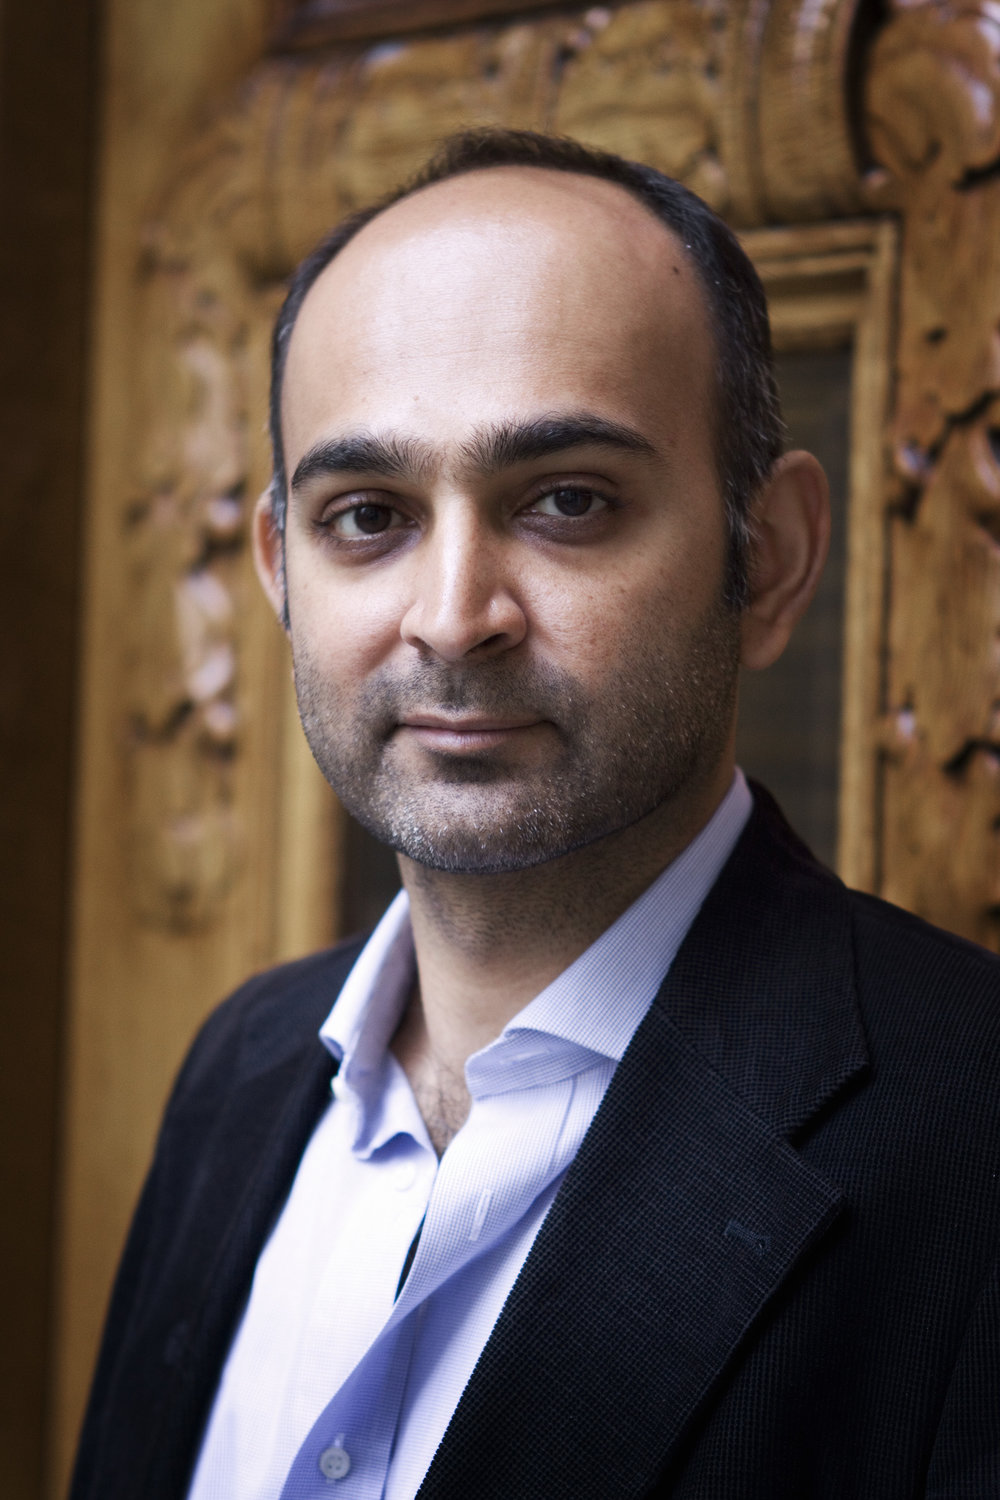 Mohsin Hamid (c) Laurent Denimal USE THIS ONE.jpg